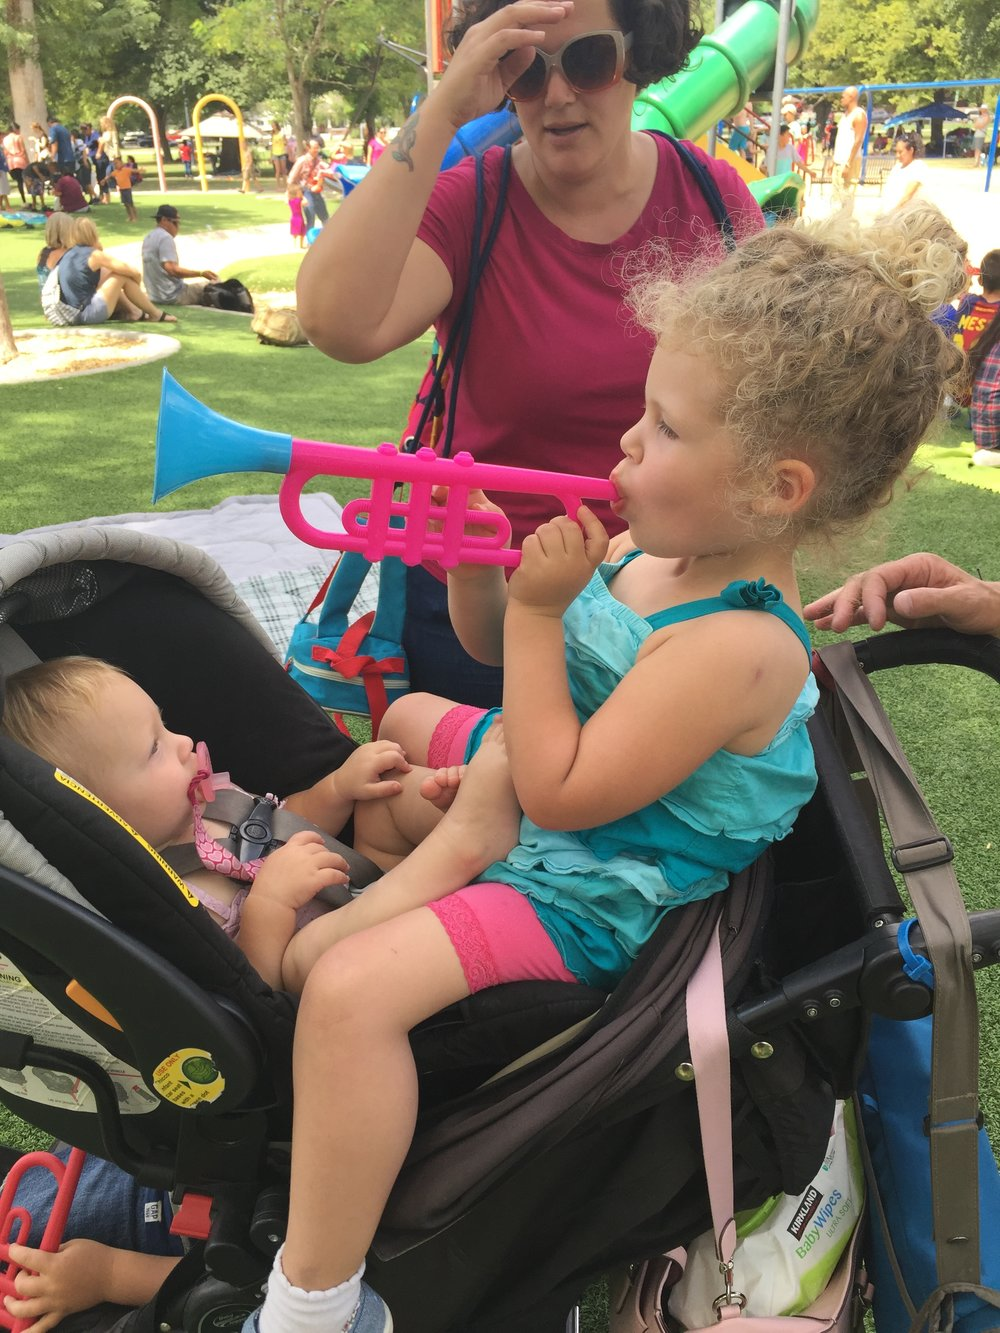 Sharing strollers